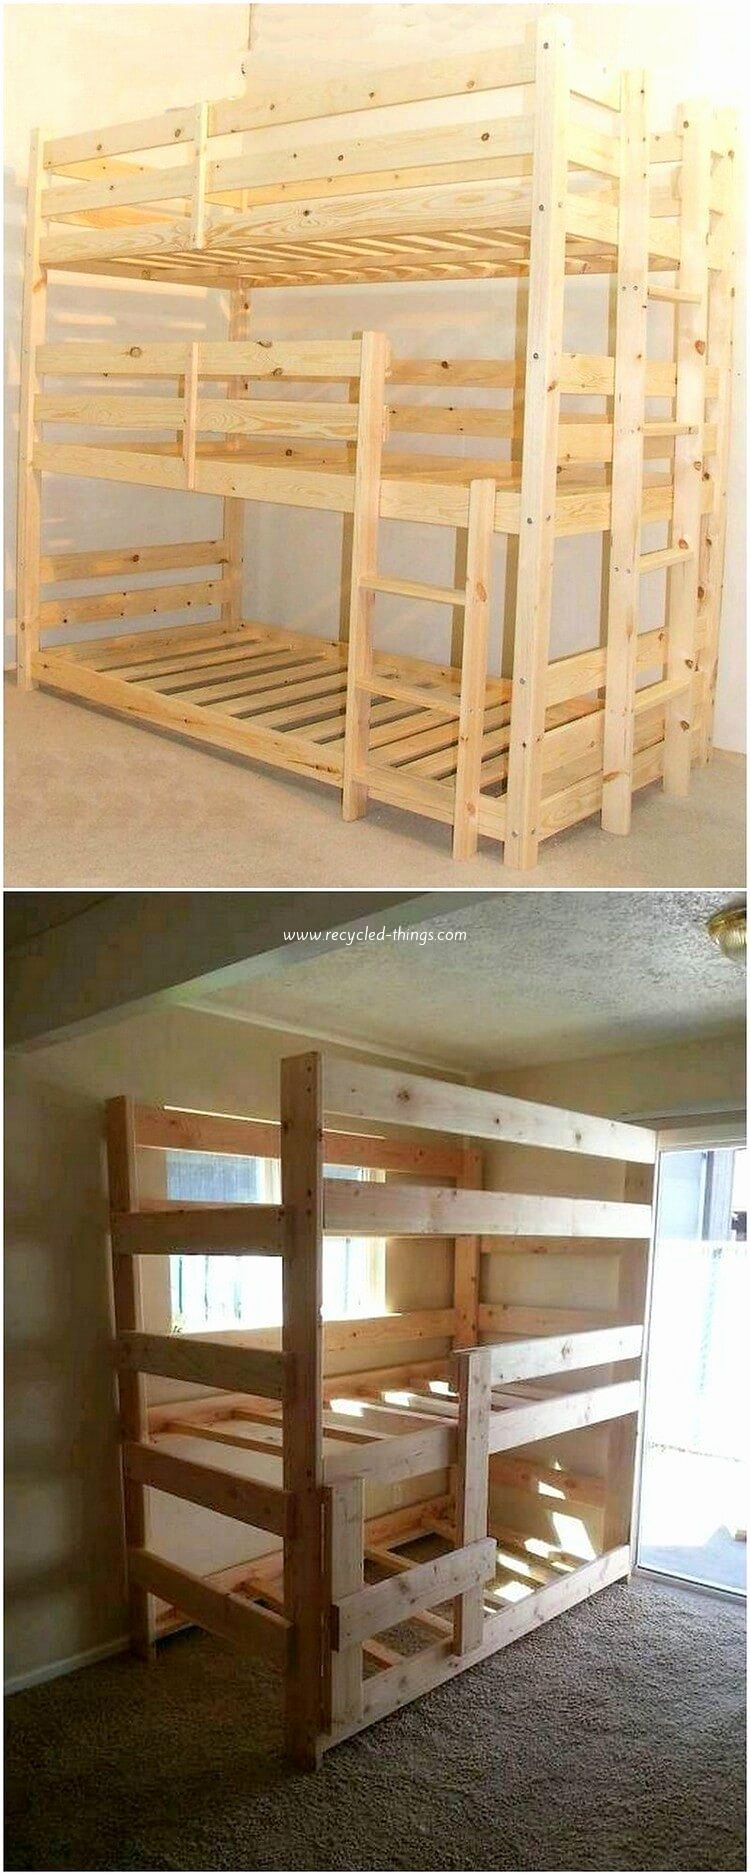 T Shaped Bunk Bed Beautiful Fascinating Ideas To Repurpose Old